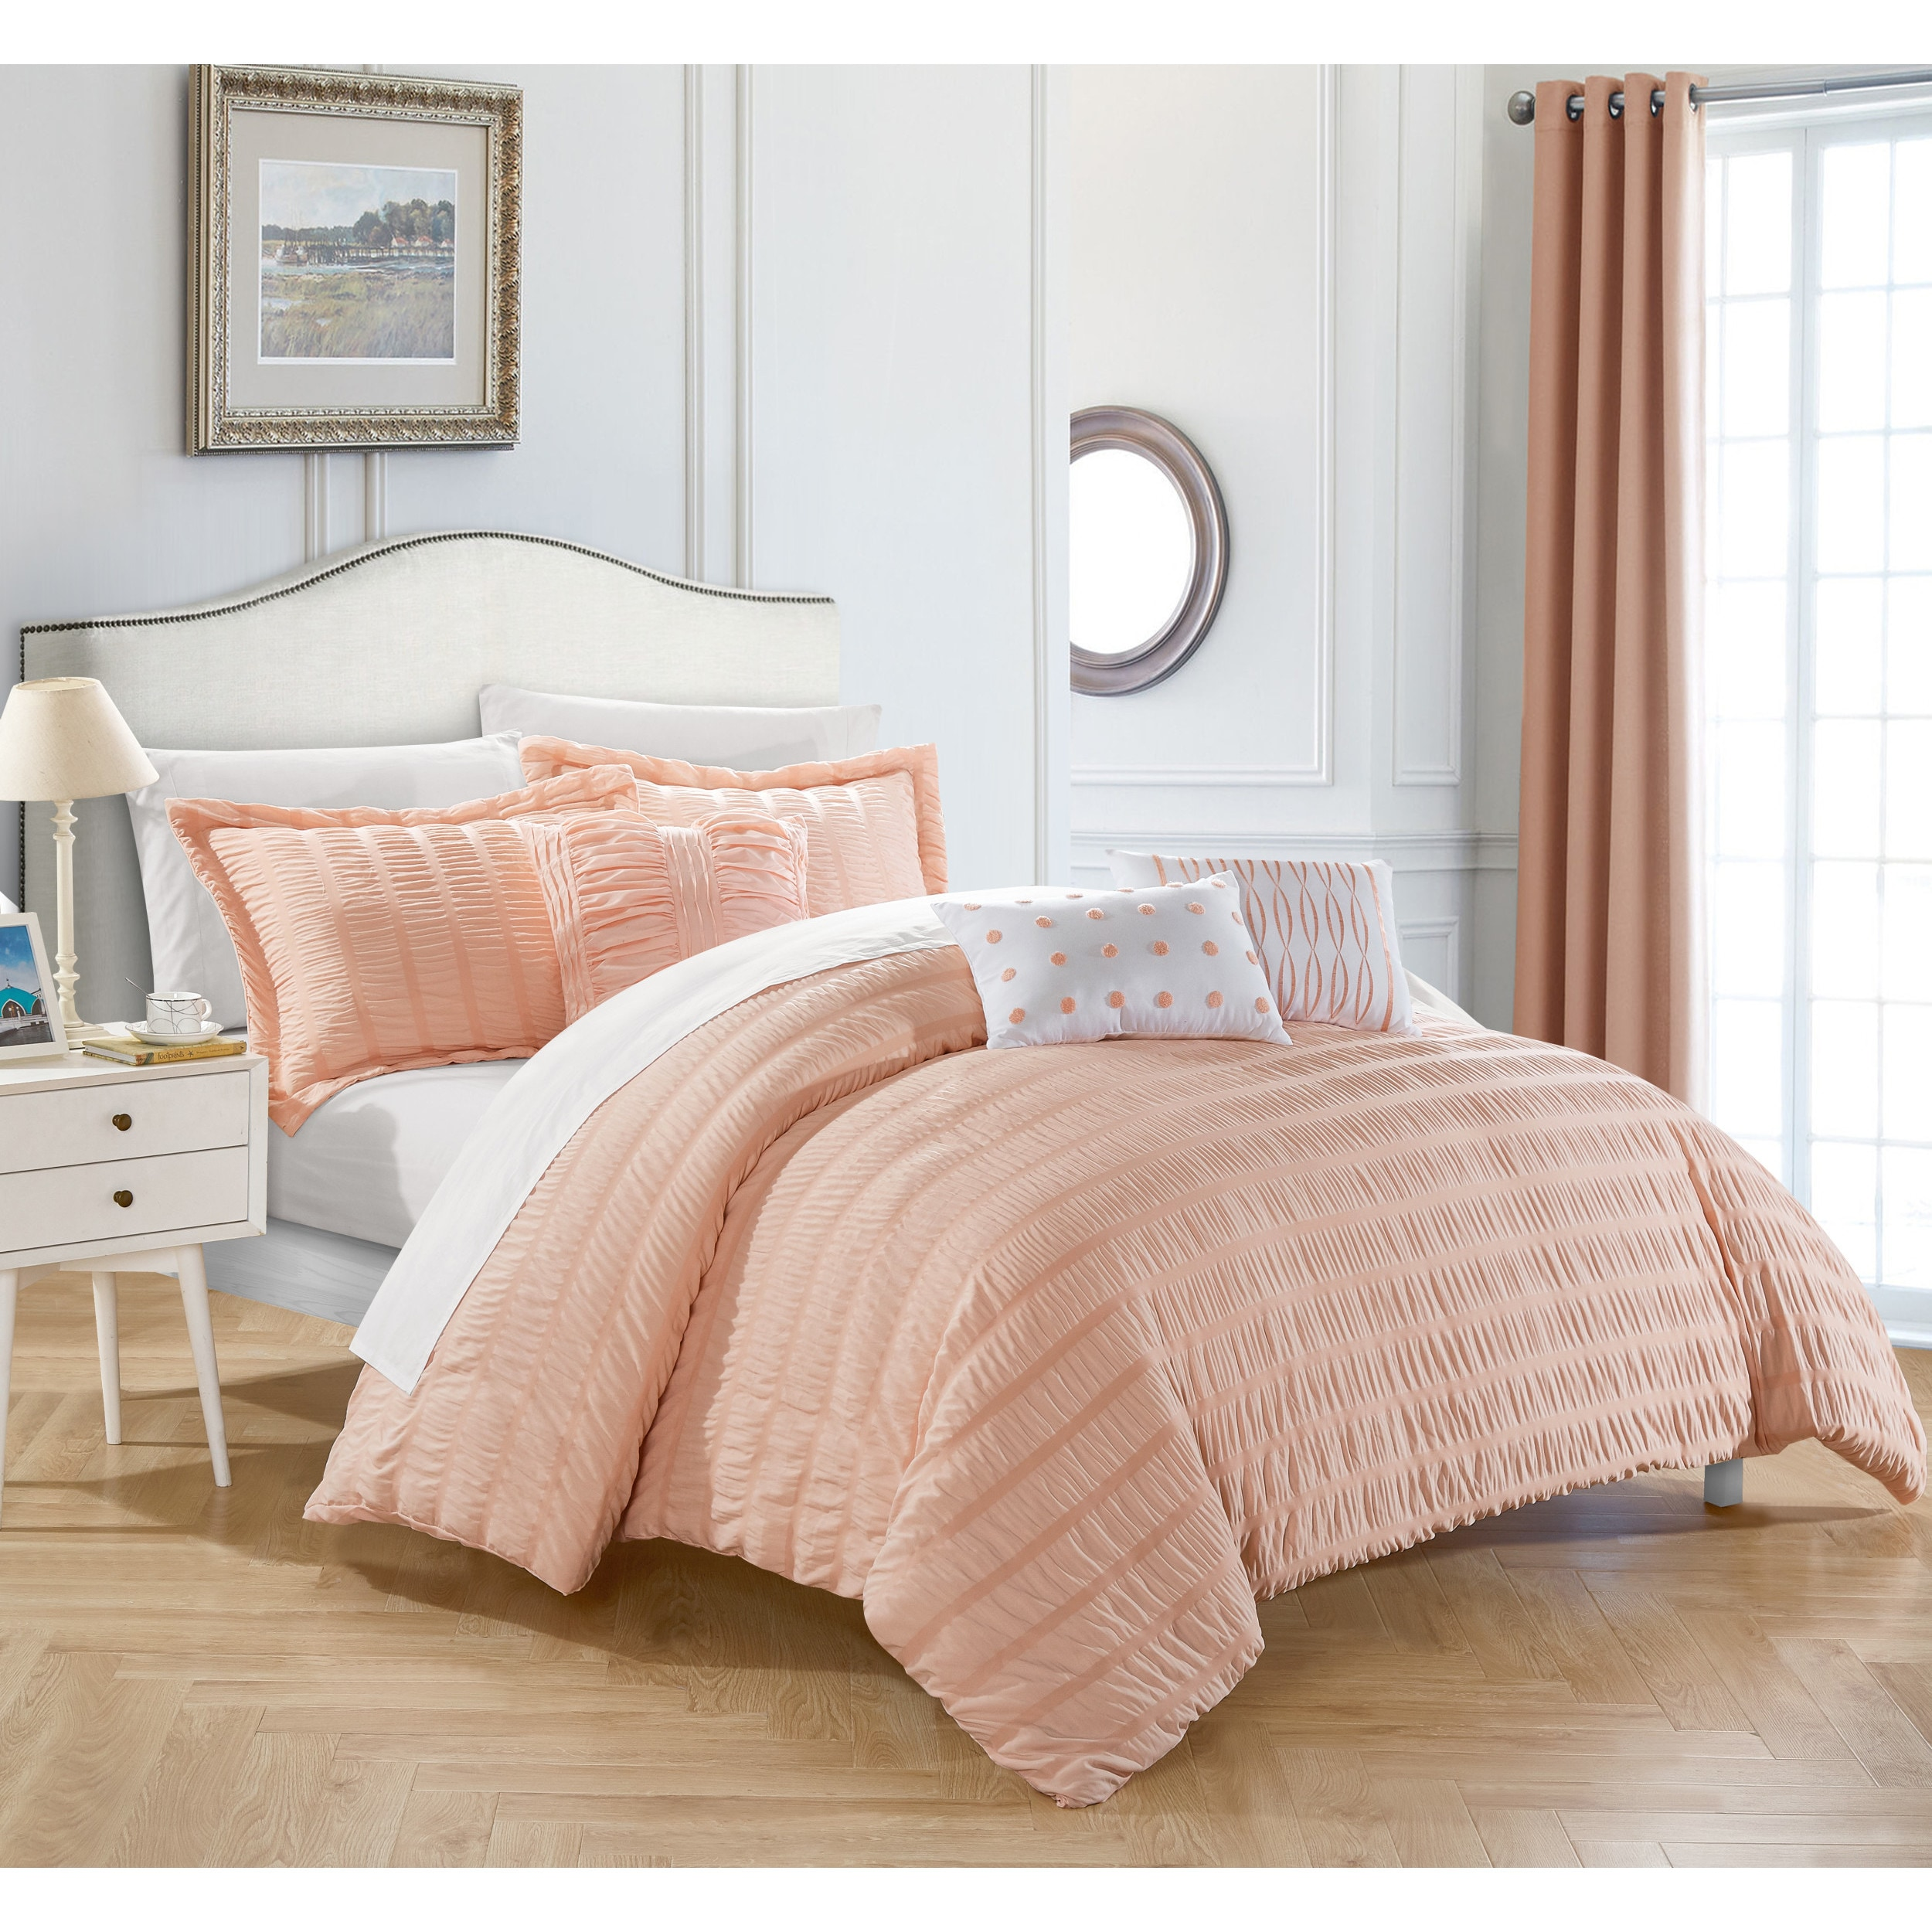 asli co sets queen comforter uk aetherair king cheap and sheets bedding turquoise teal coral light unusual bed